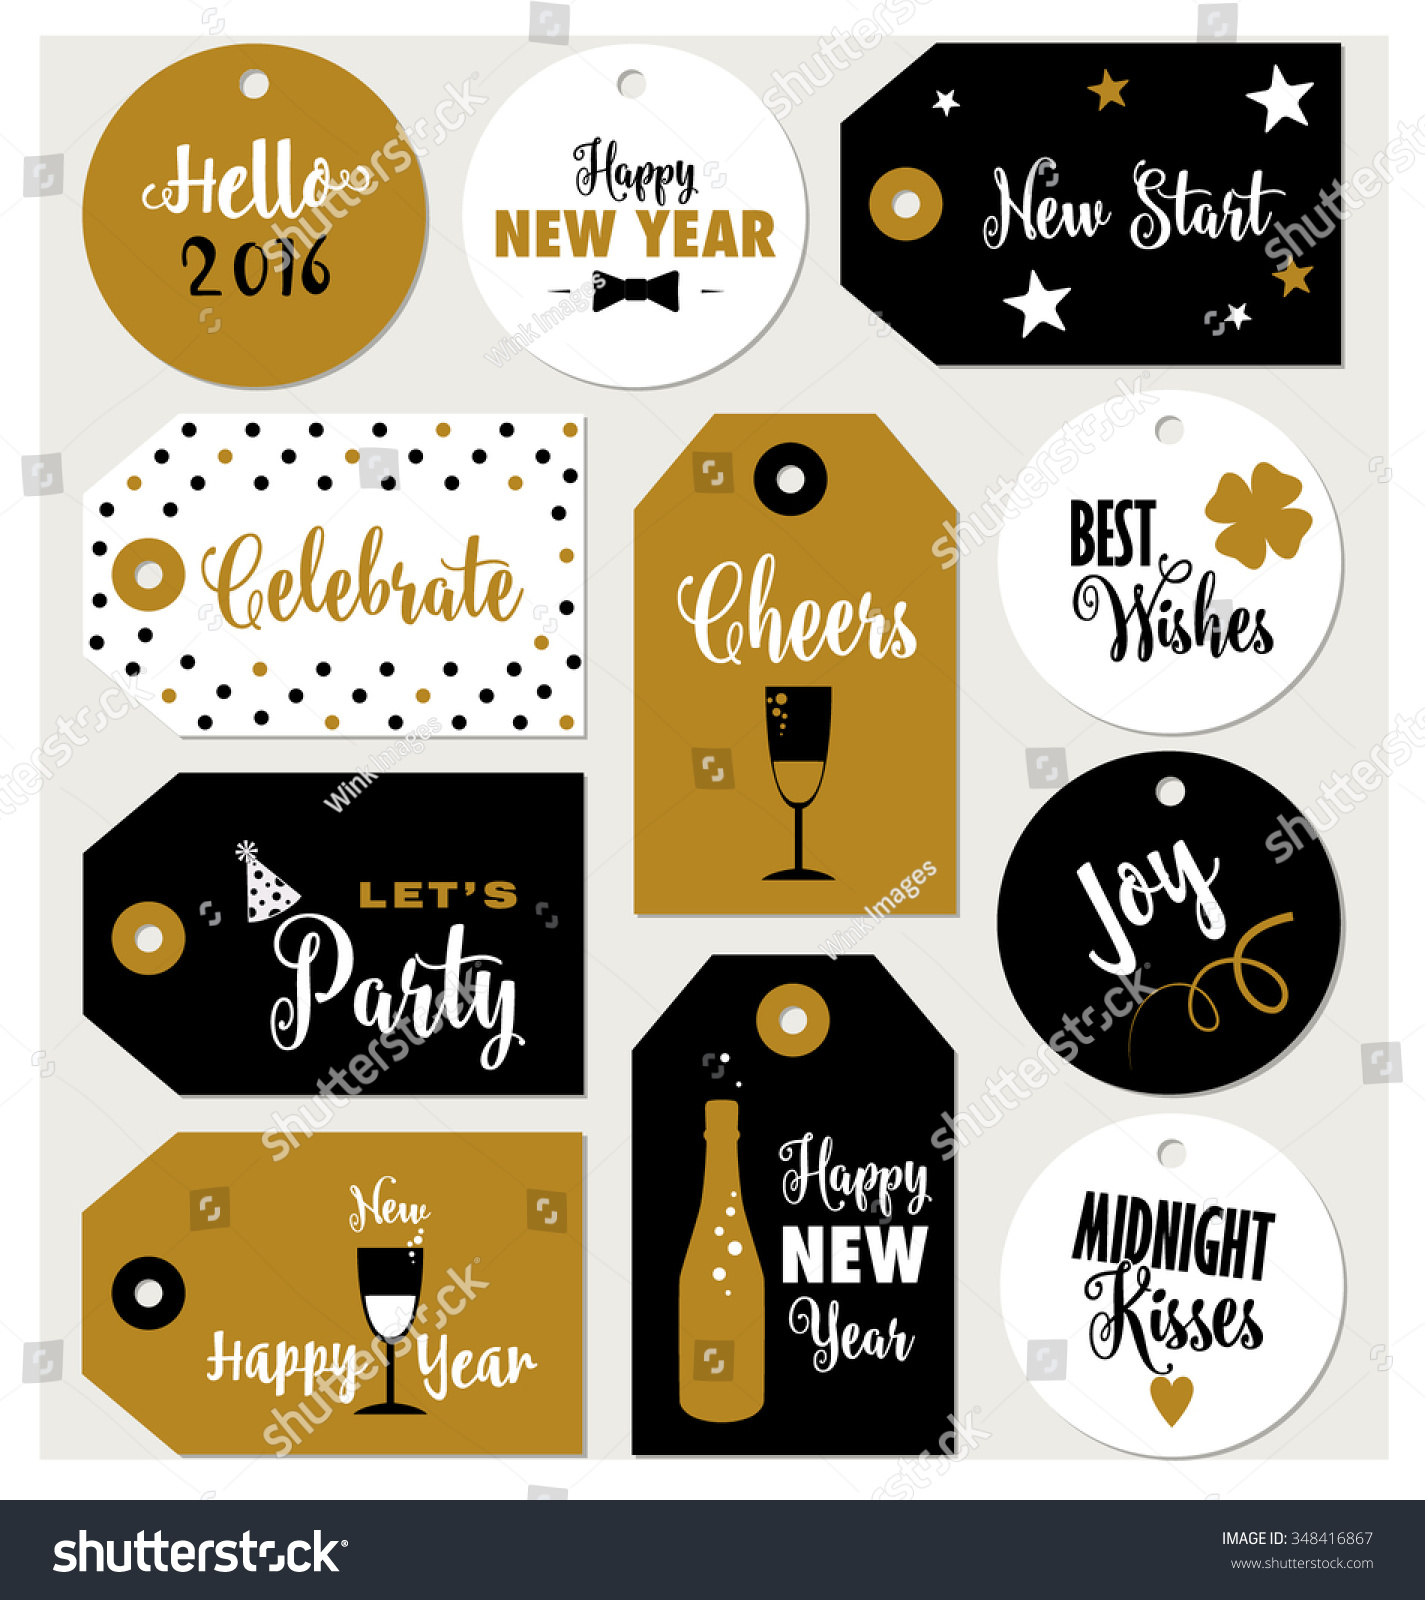 Set Of New Year Gift Tags Vector Template Hand Drawn: Set New Year Gift Tags Typographic Stock Vector 348416867